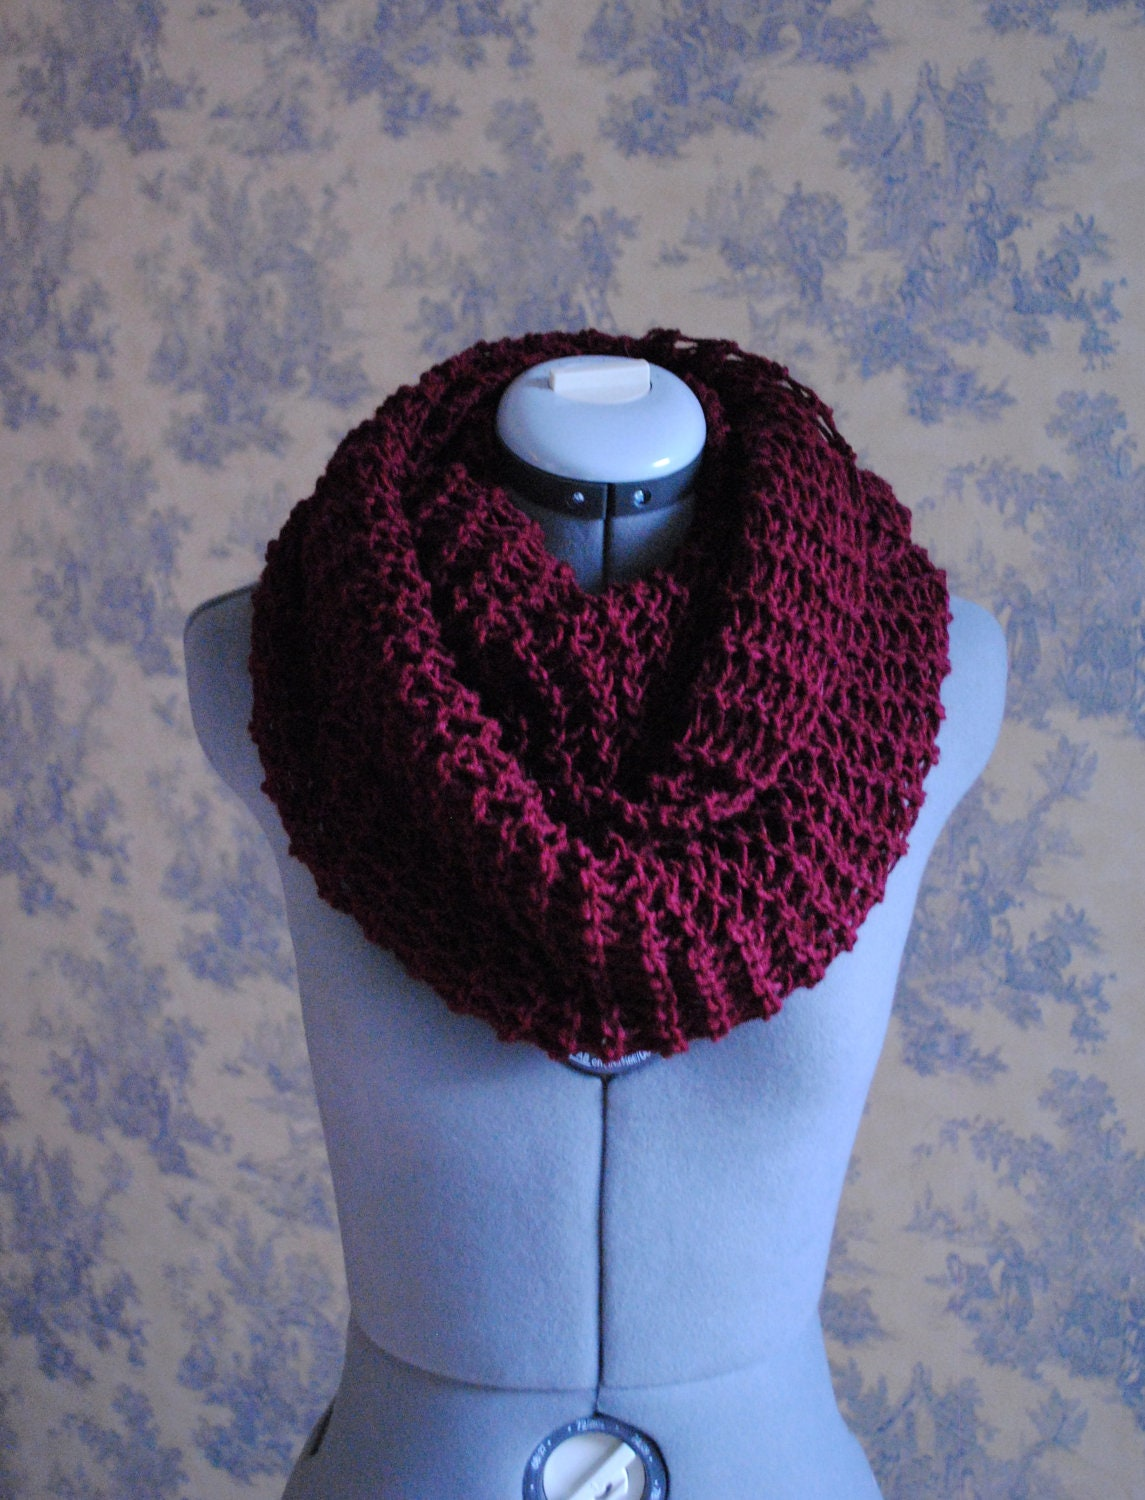 This infinity scarf will keep you warm during the chilly season. The scarf is knitted in a thick pattern for extra warmth. Wear this scarf double looped or long; it is the perfect winter accessory.